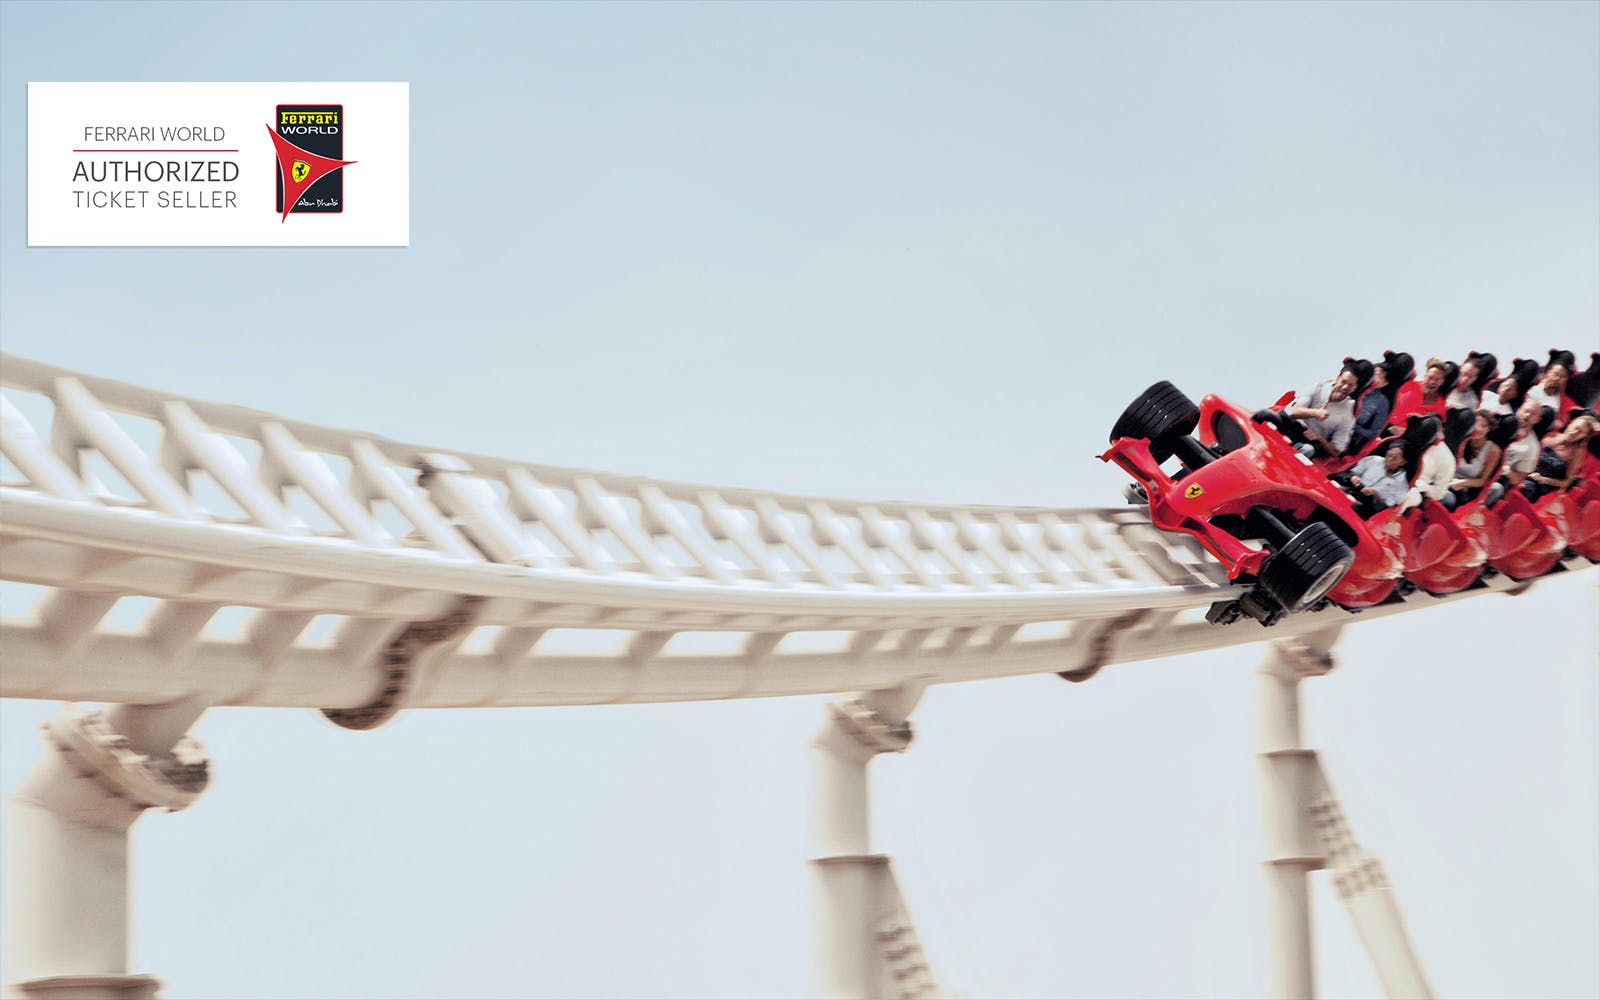 ferrari world with 3 ride quick pass with transfers-3